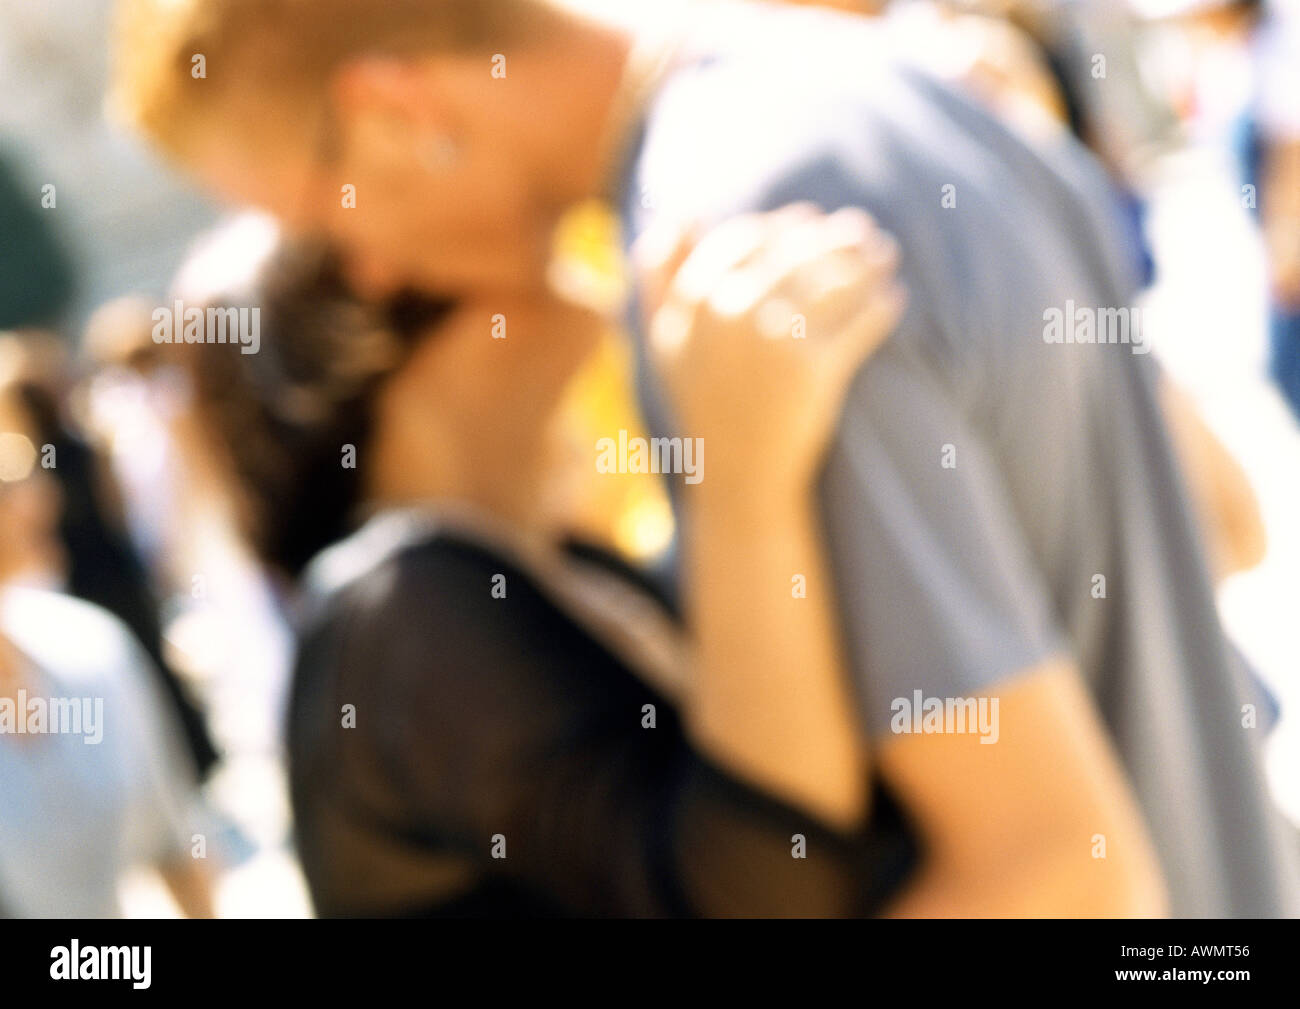 Man and woman hugging, close up, blurred - Stock Image